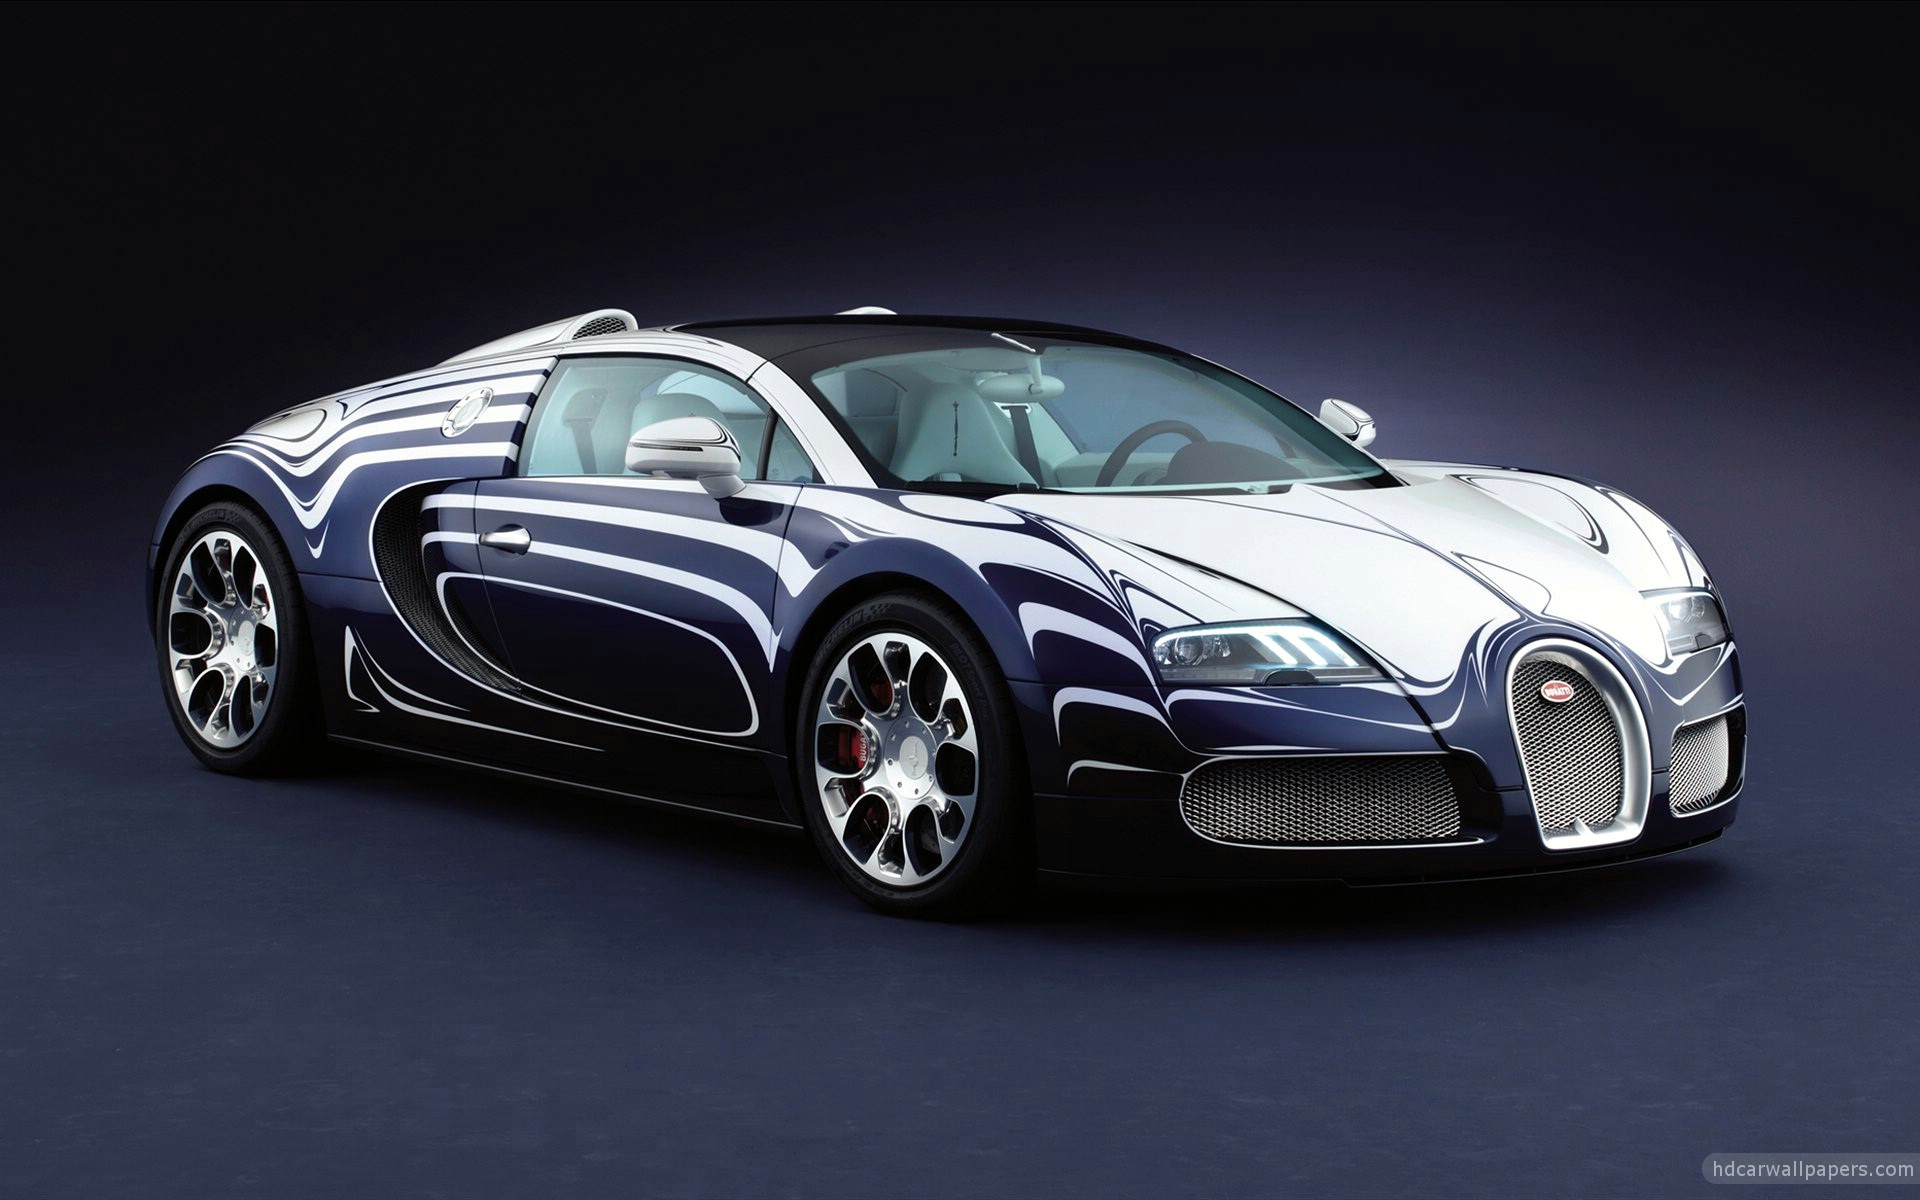 2011 bugatti veyron grand sport wallpaper hd car wallpapers. Black Bedroom Furniture Sets. Home Design Ideas